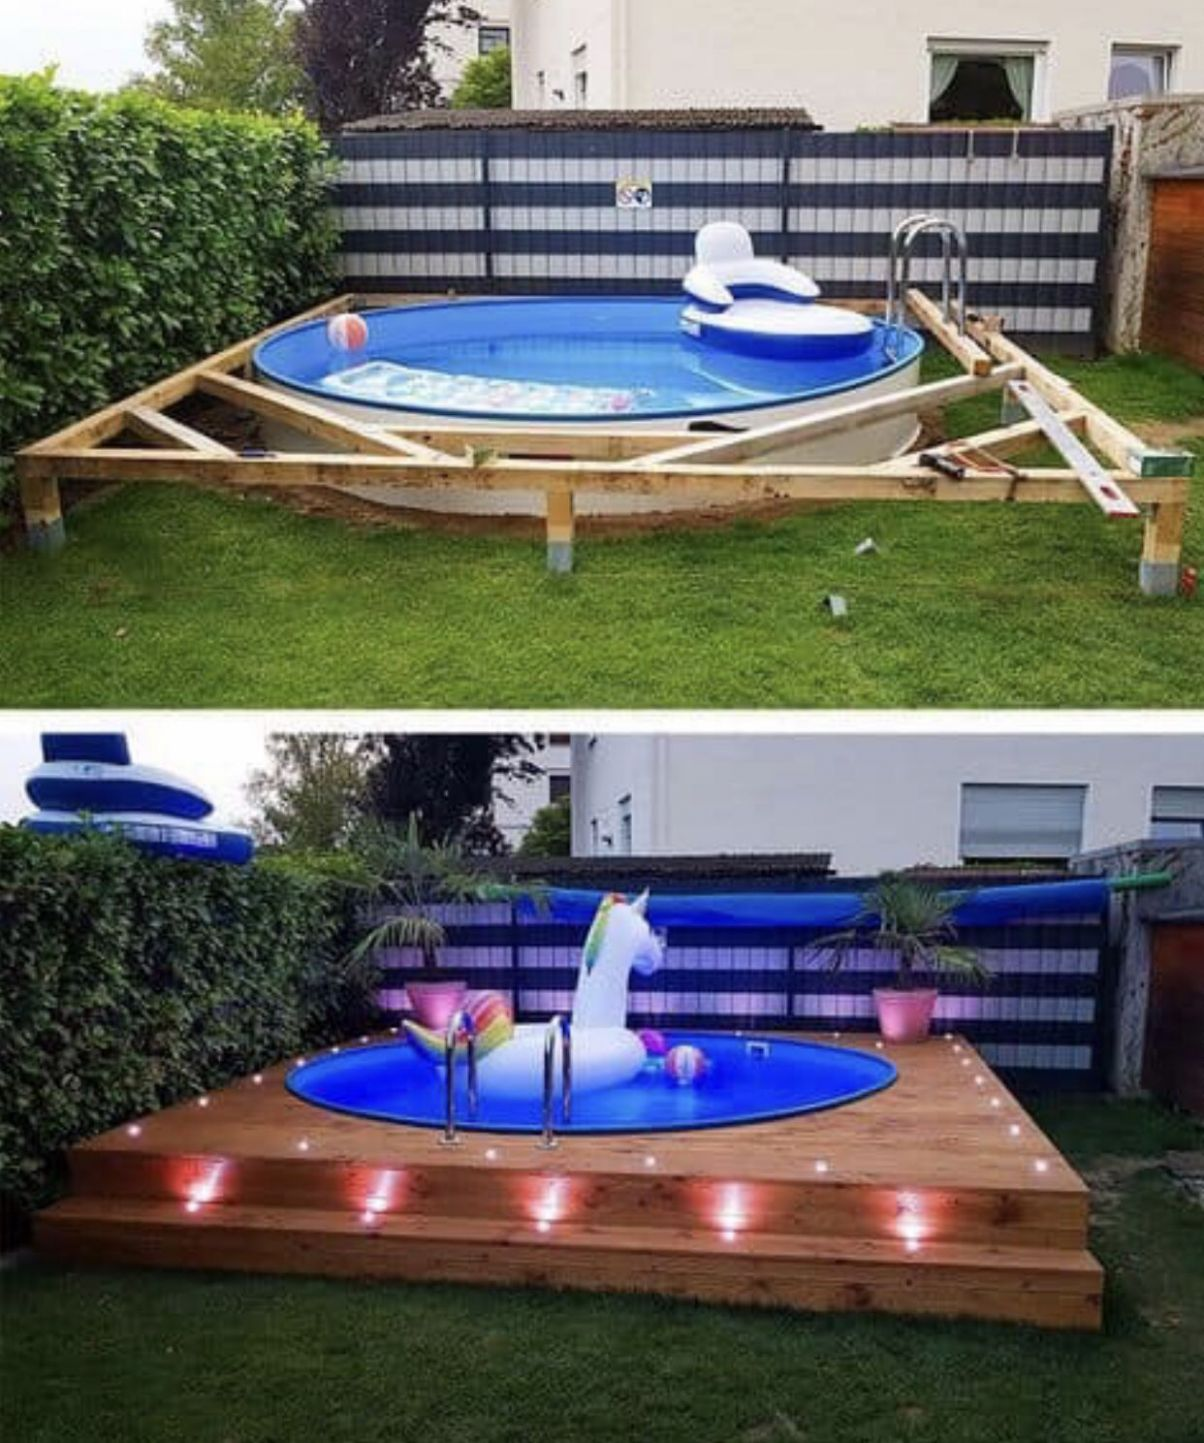 Pool ideas | Diy swimming pool, Backyard decor, Backyard - pool ideas diy